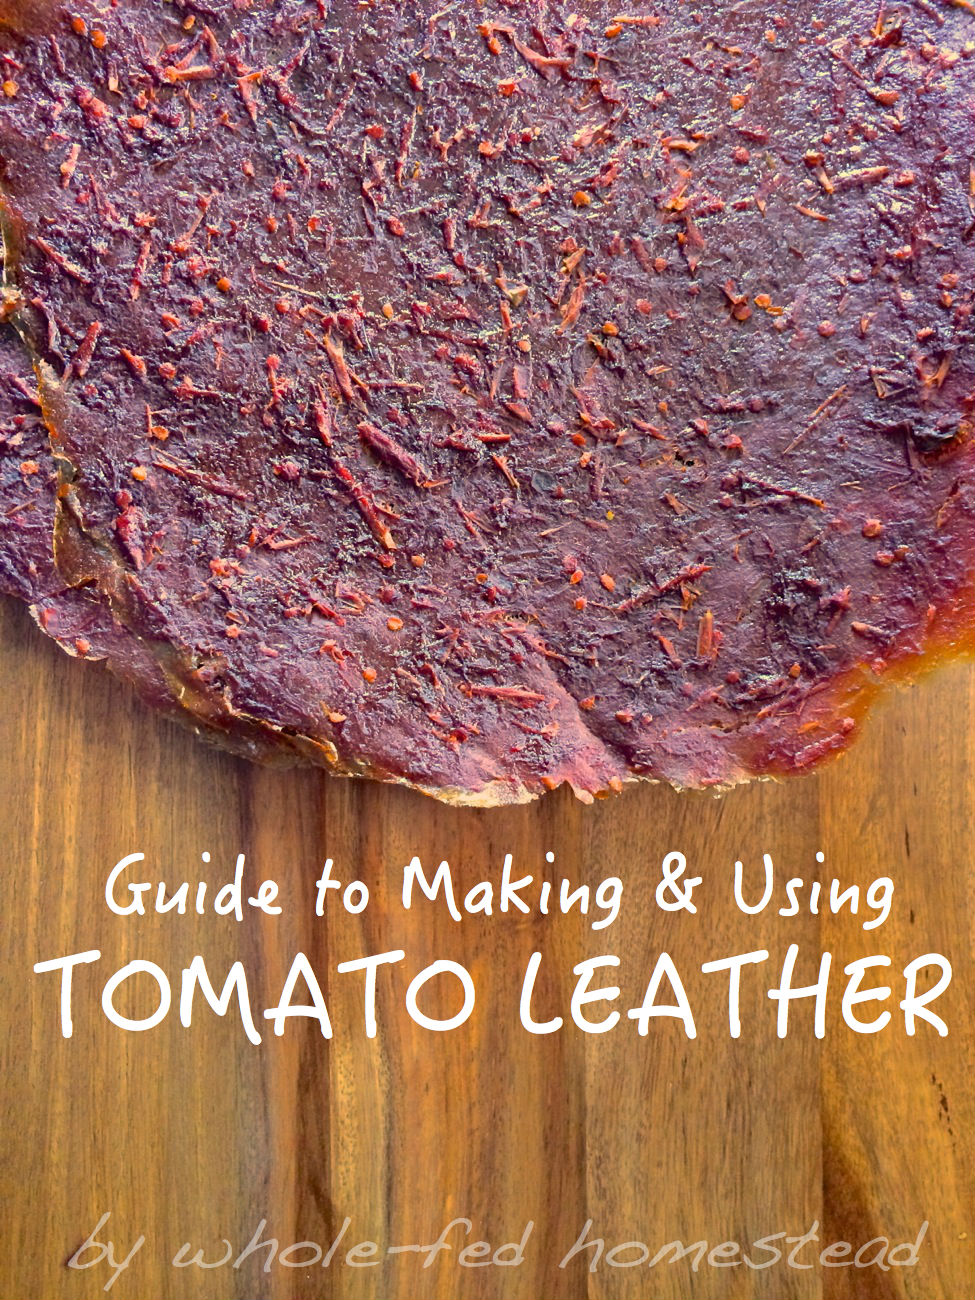 Preserving the Harvest: Tomato Leather